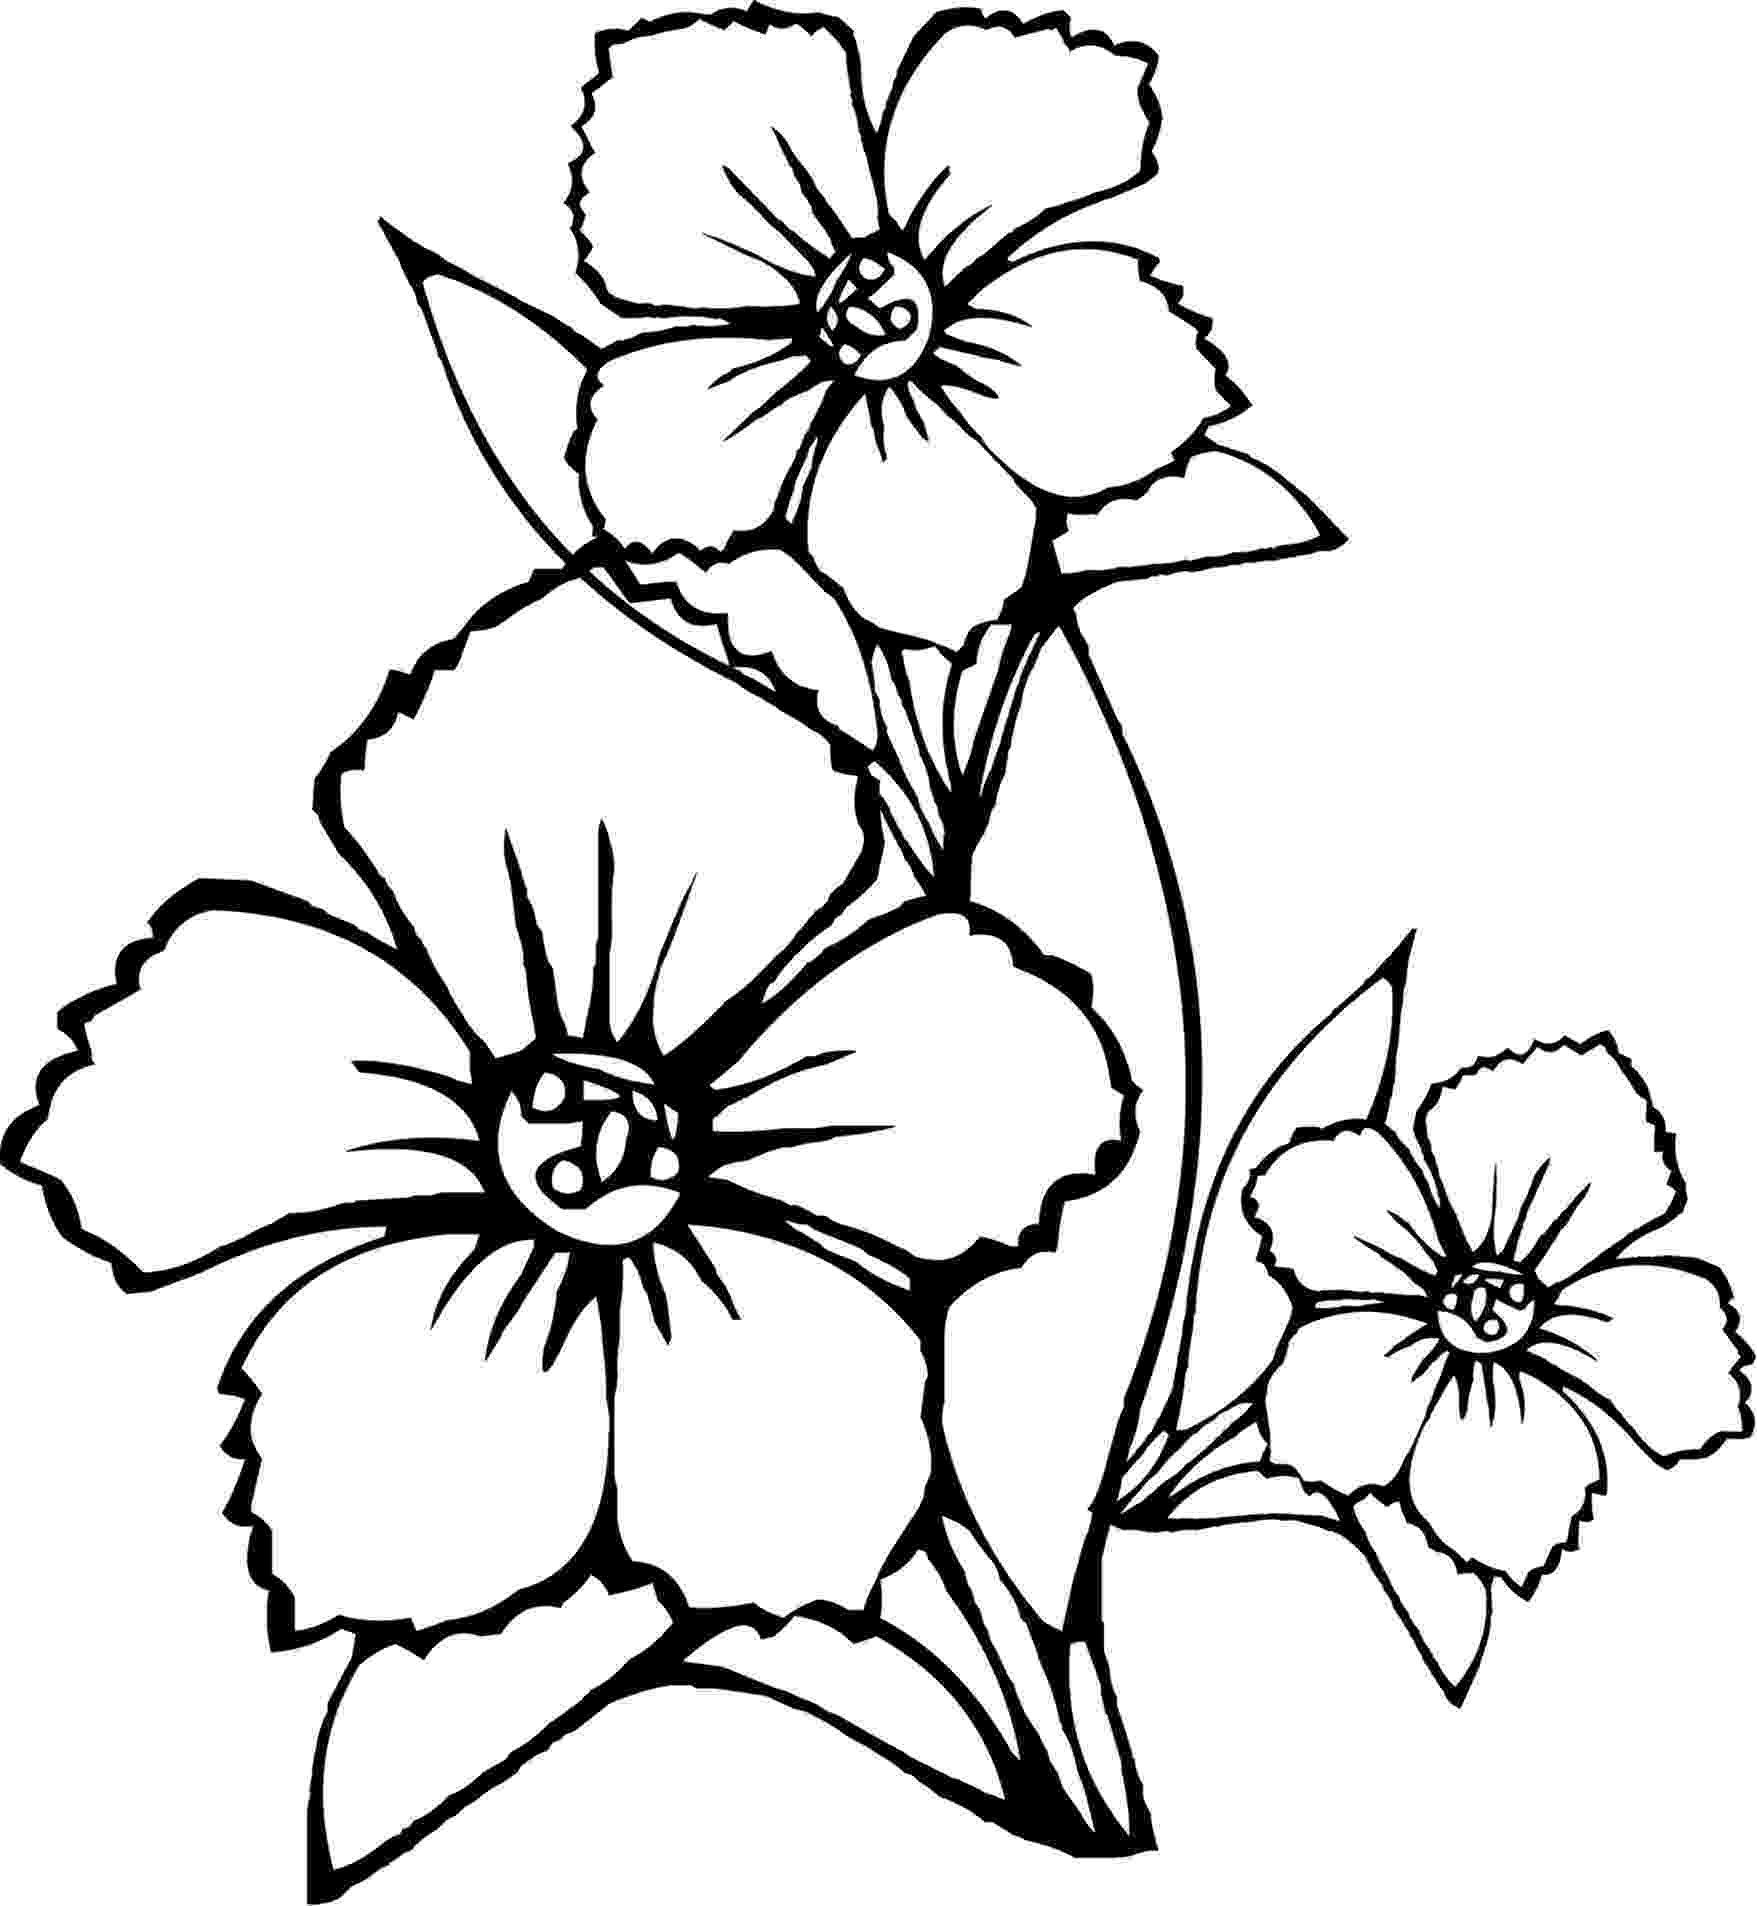 flower colouring pages to print free printable flower coloring pages for kids cool2bkids flower to pages print colouring